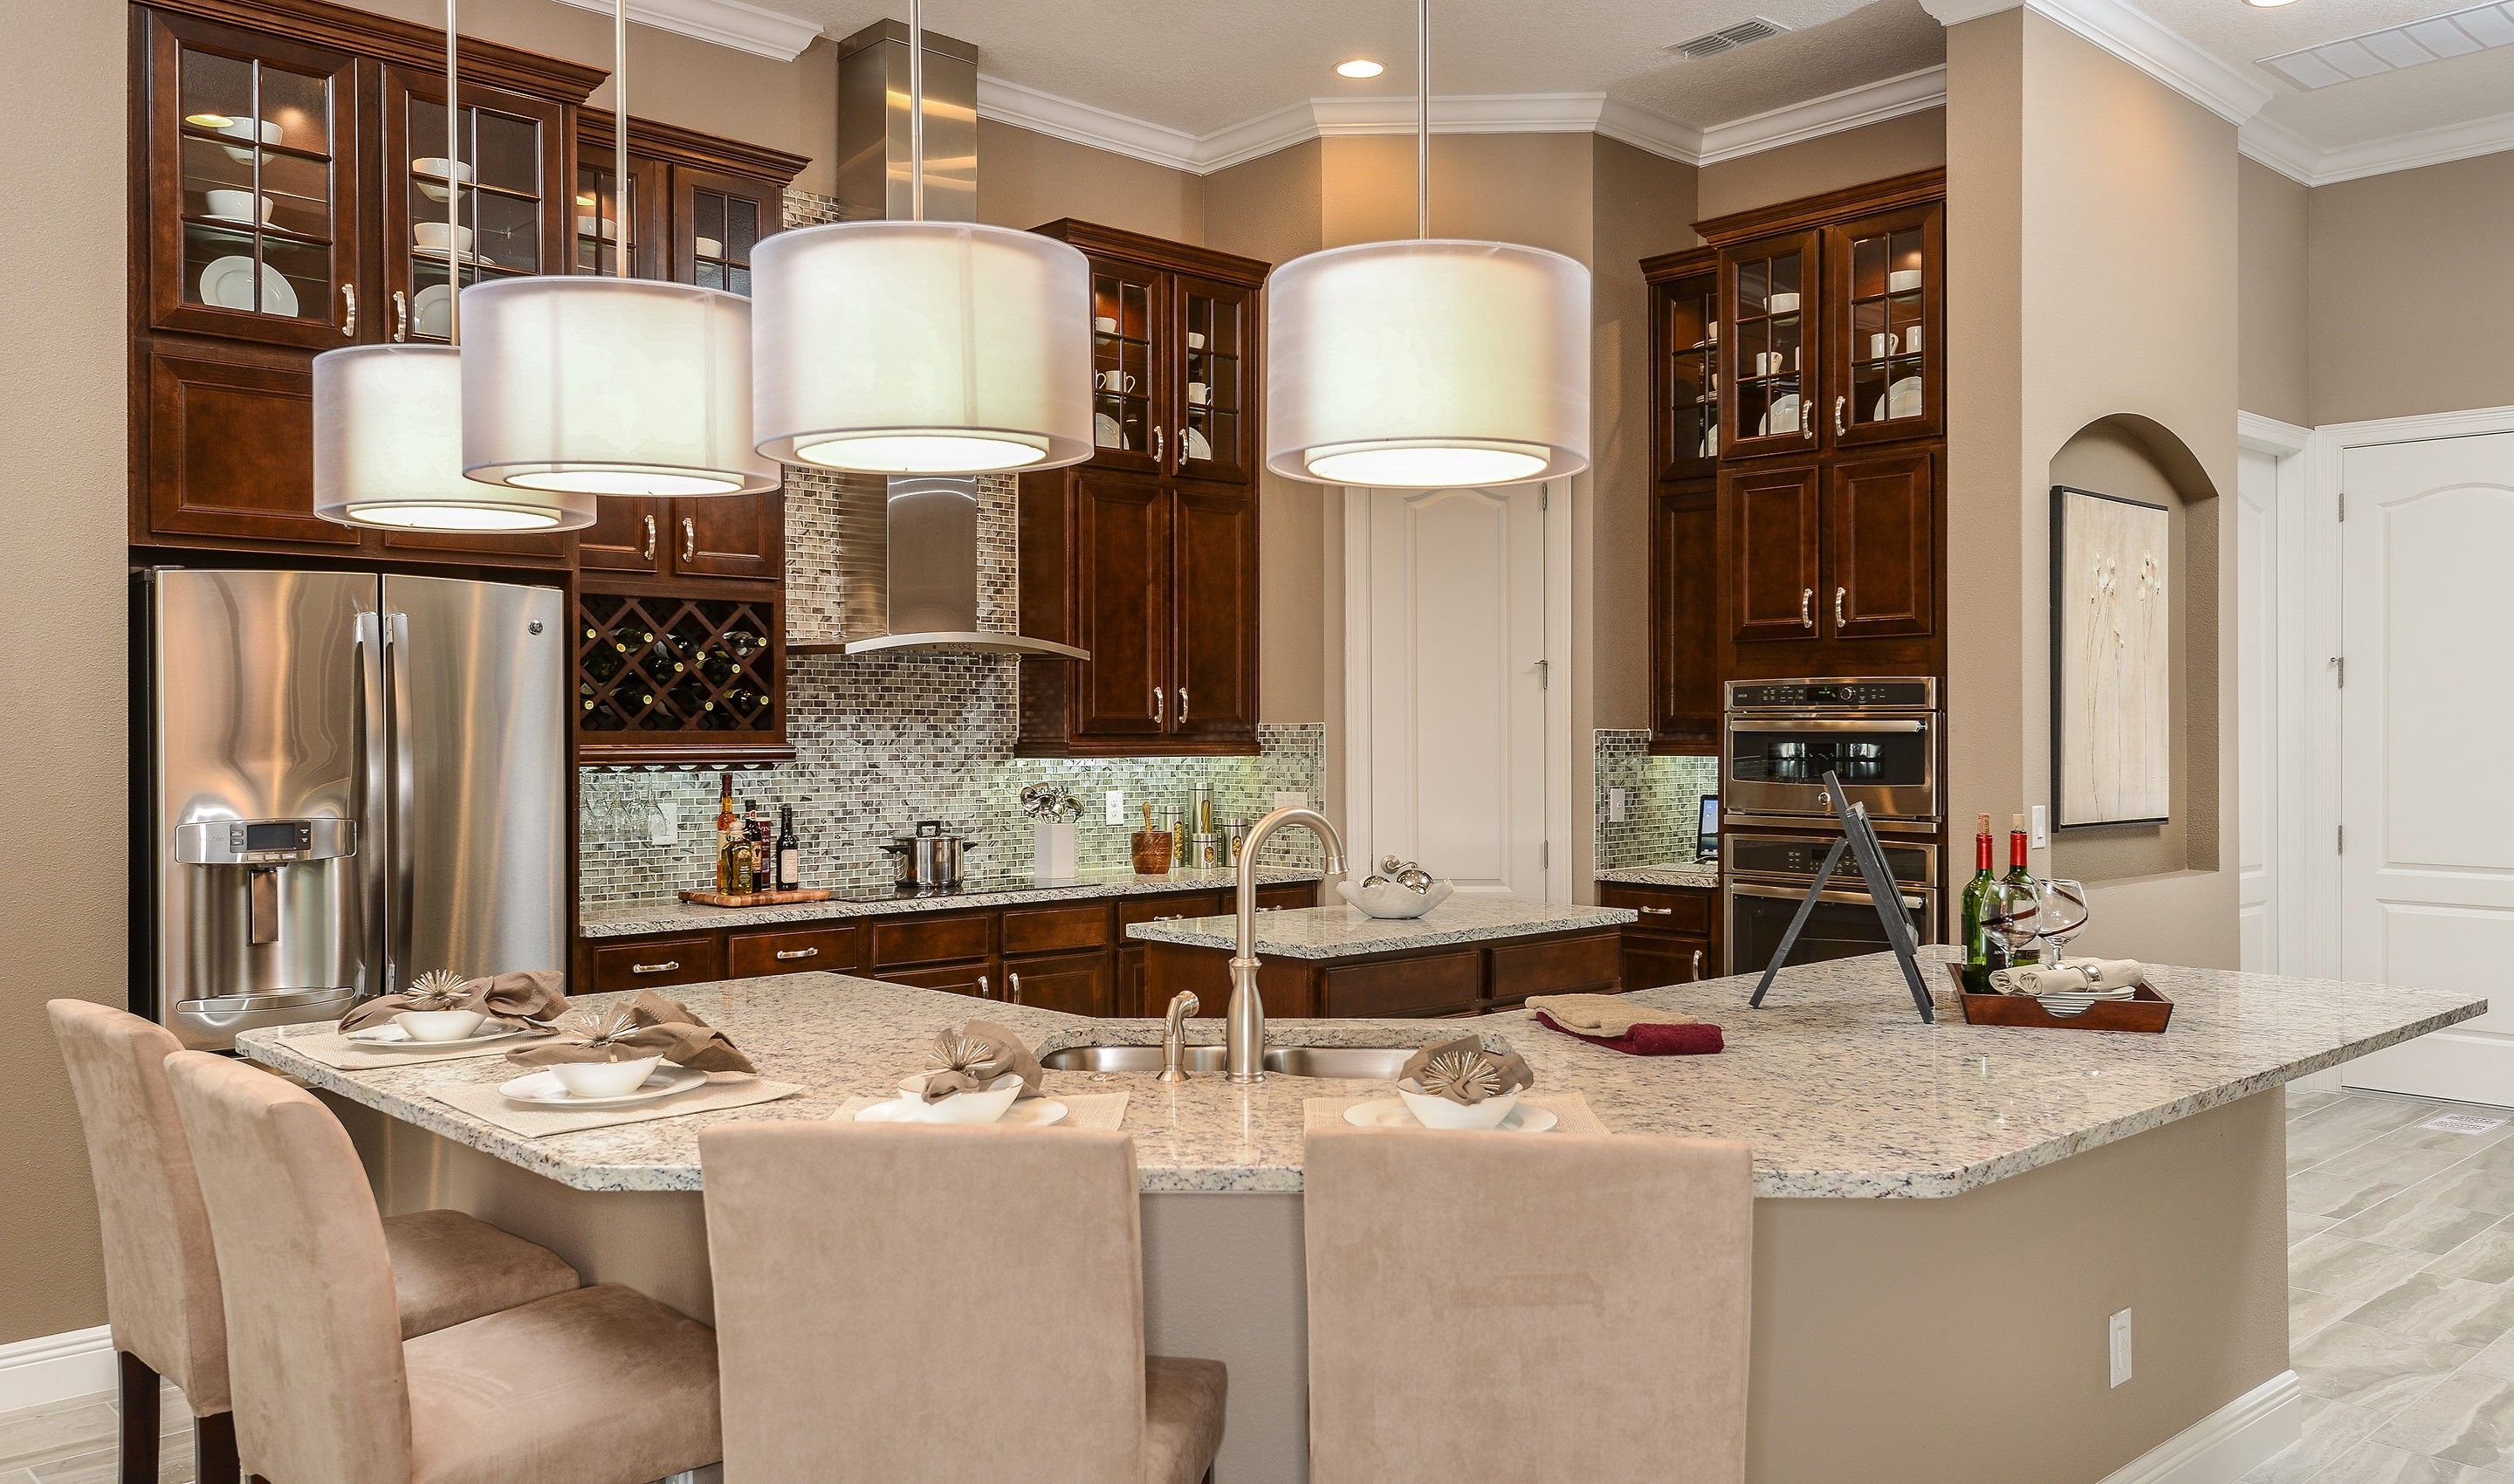 Single Family for Sale at Gosford 25882 Crossings Bluff Lane, Homesite 260 Sorrento, Florida 32776 United States